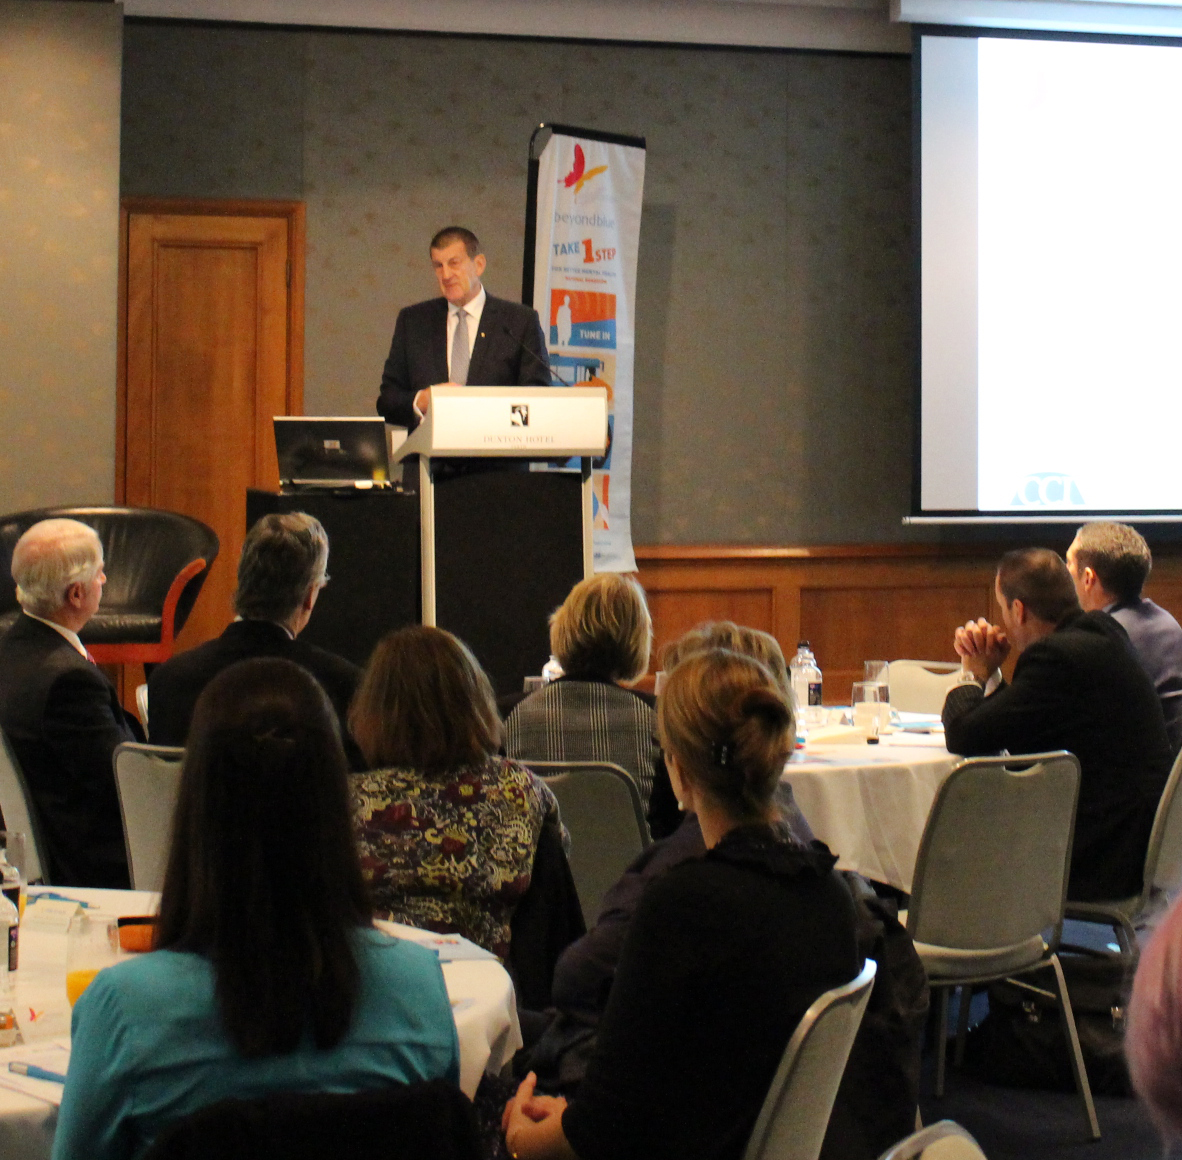 Beyond Blue Chairman Jeff Kennett speaking to business leaders in Perth about the importance of creating mentally healthy workplaces: WA.